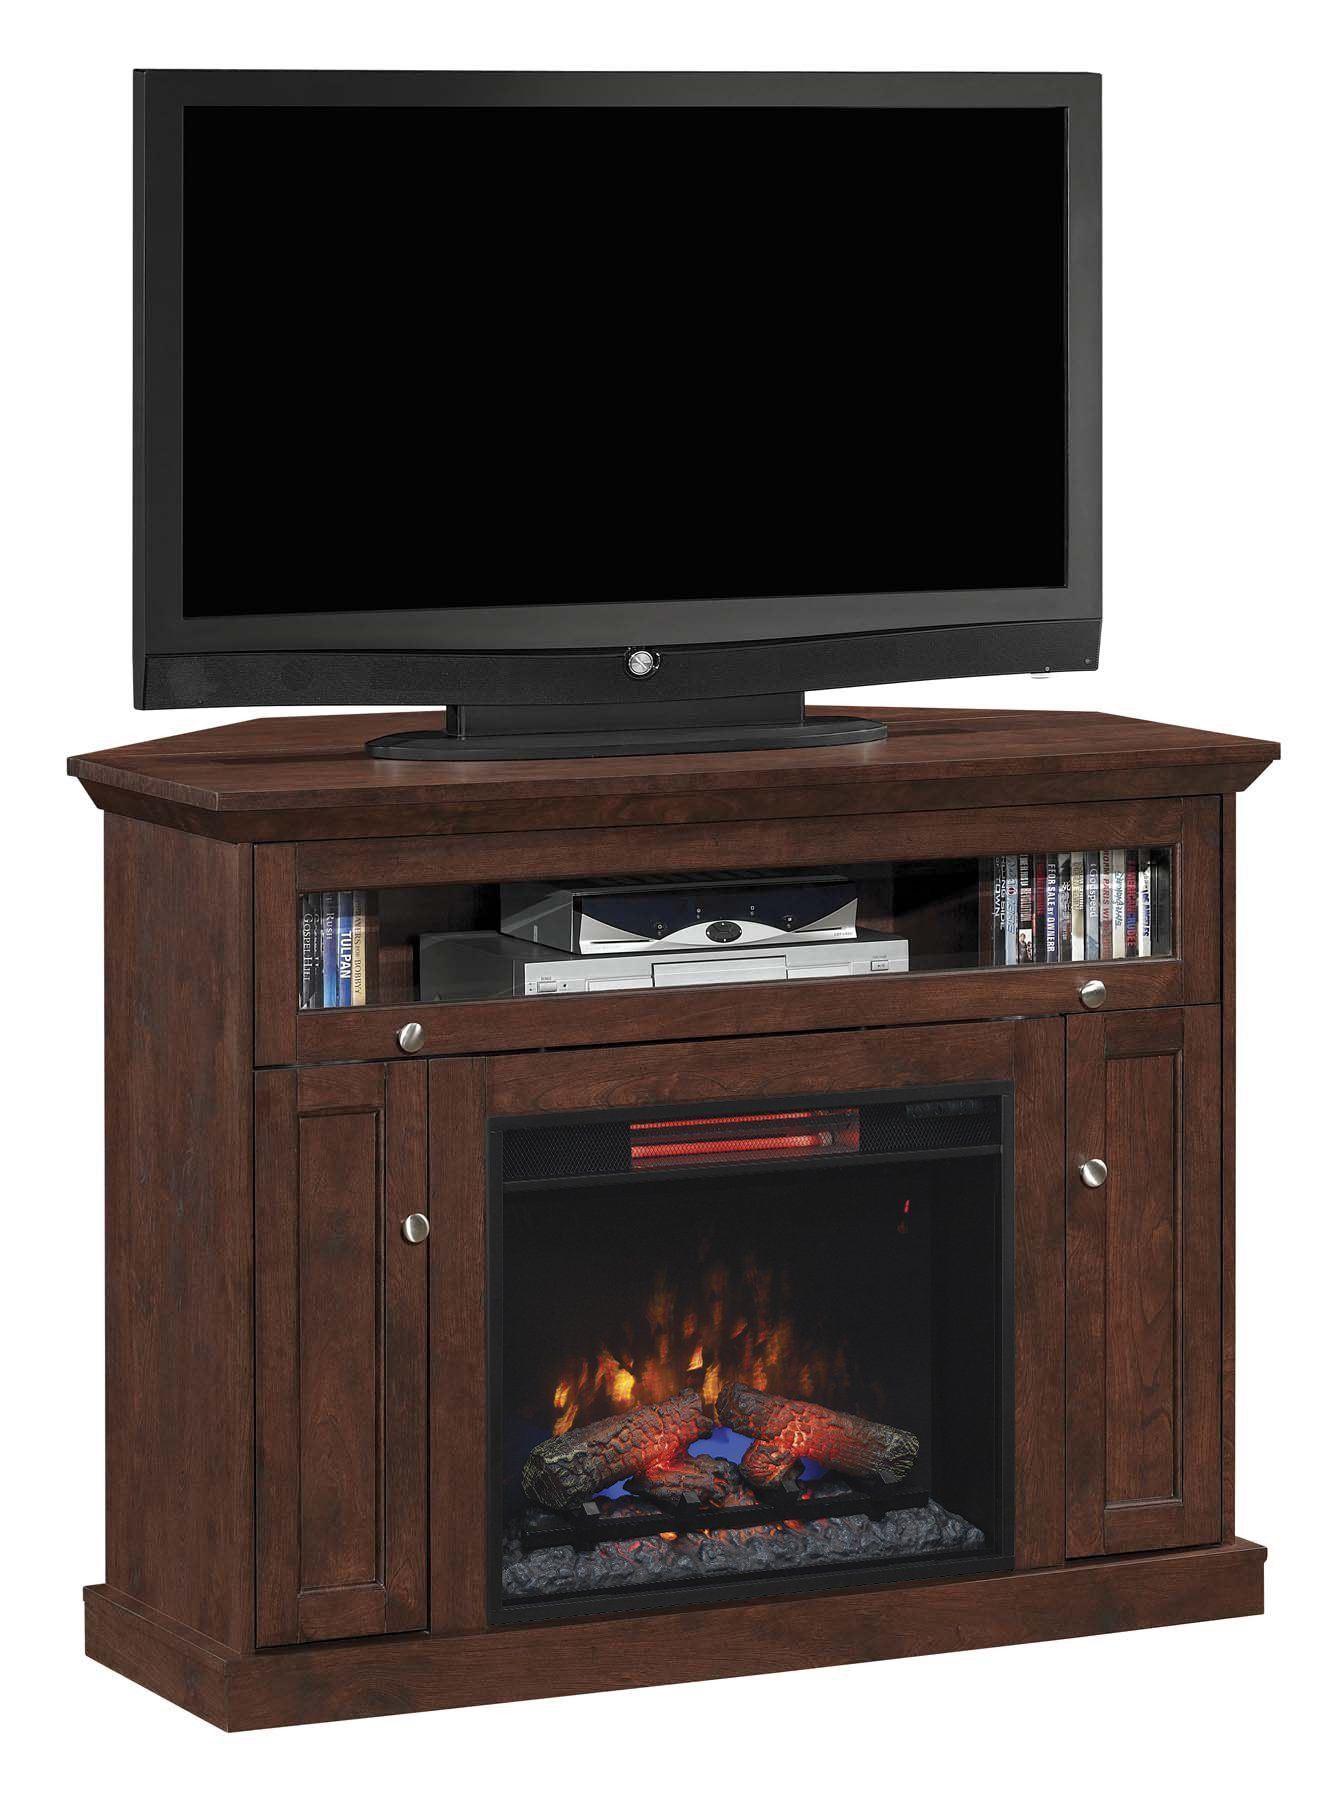 Electric Fireplace with Entertainment Center Costco Beautiful Antique Cherry 46 Inch Tv Stand with Fireplace Windsor In